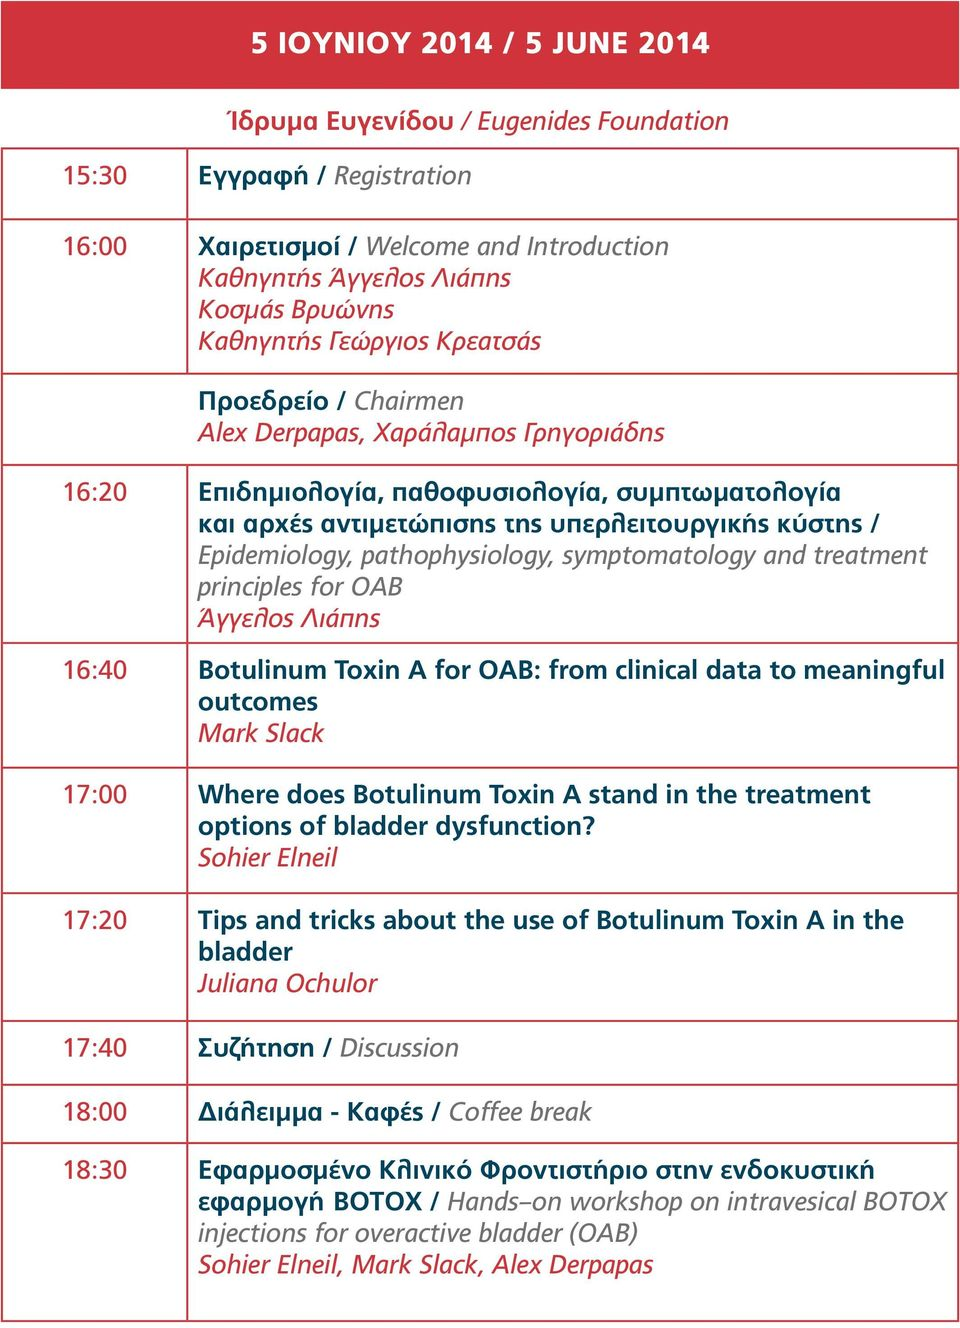 symptomatology and treatment principles for OAB 16:40 Botulinum Toxin A for OAB: from clinical data to meaningful outcomes Mark Slack 17:00 Where does Botulinum Toxin A stand in the treatment options